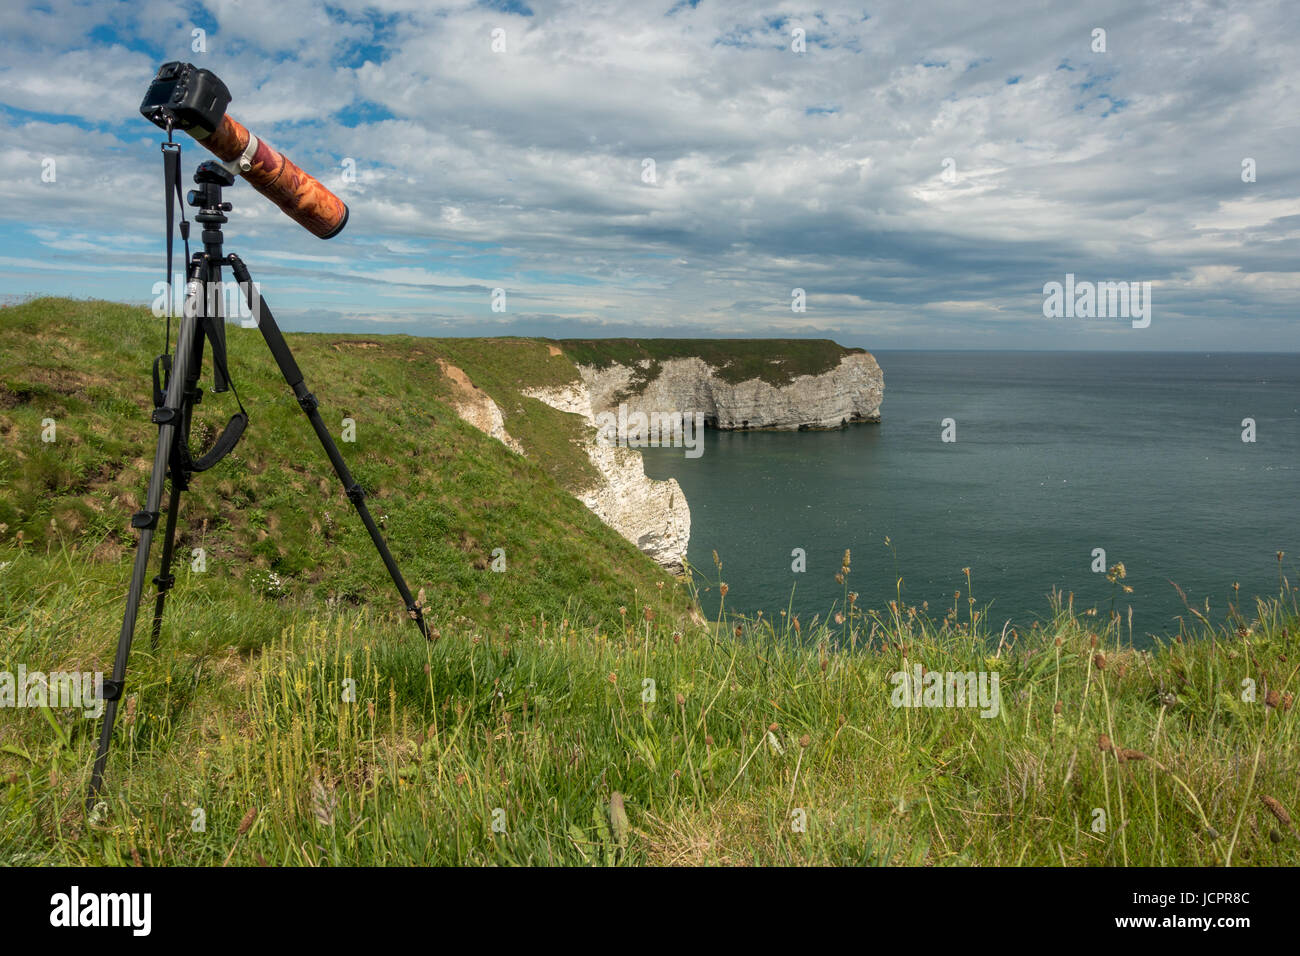 canon 7D mark iii set up on tripod for photographing seabirds with 400mm lens attached & camouflage sleeve, - Stock Image